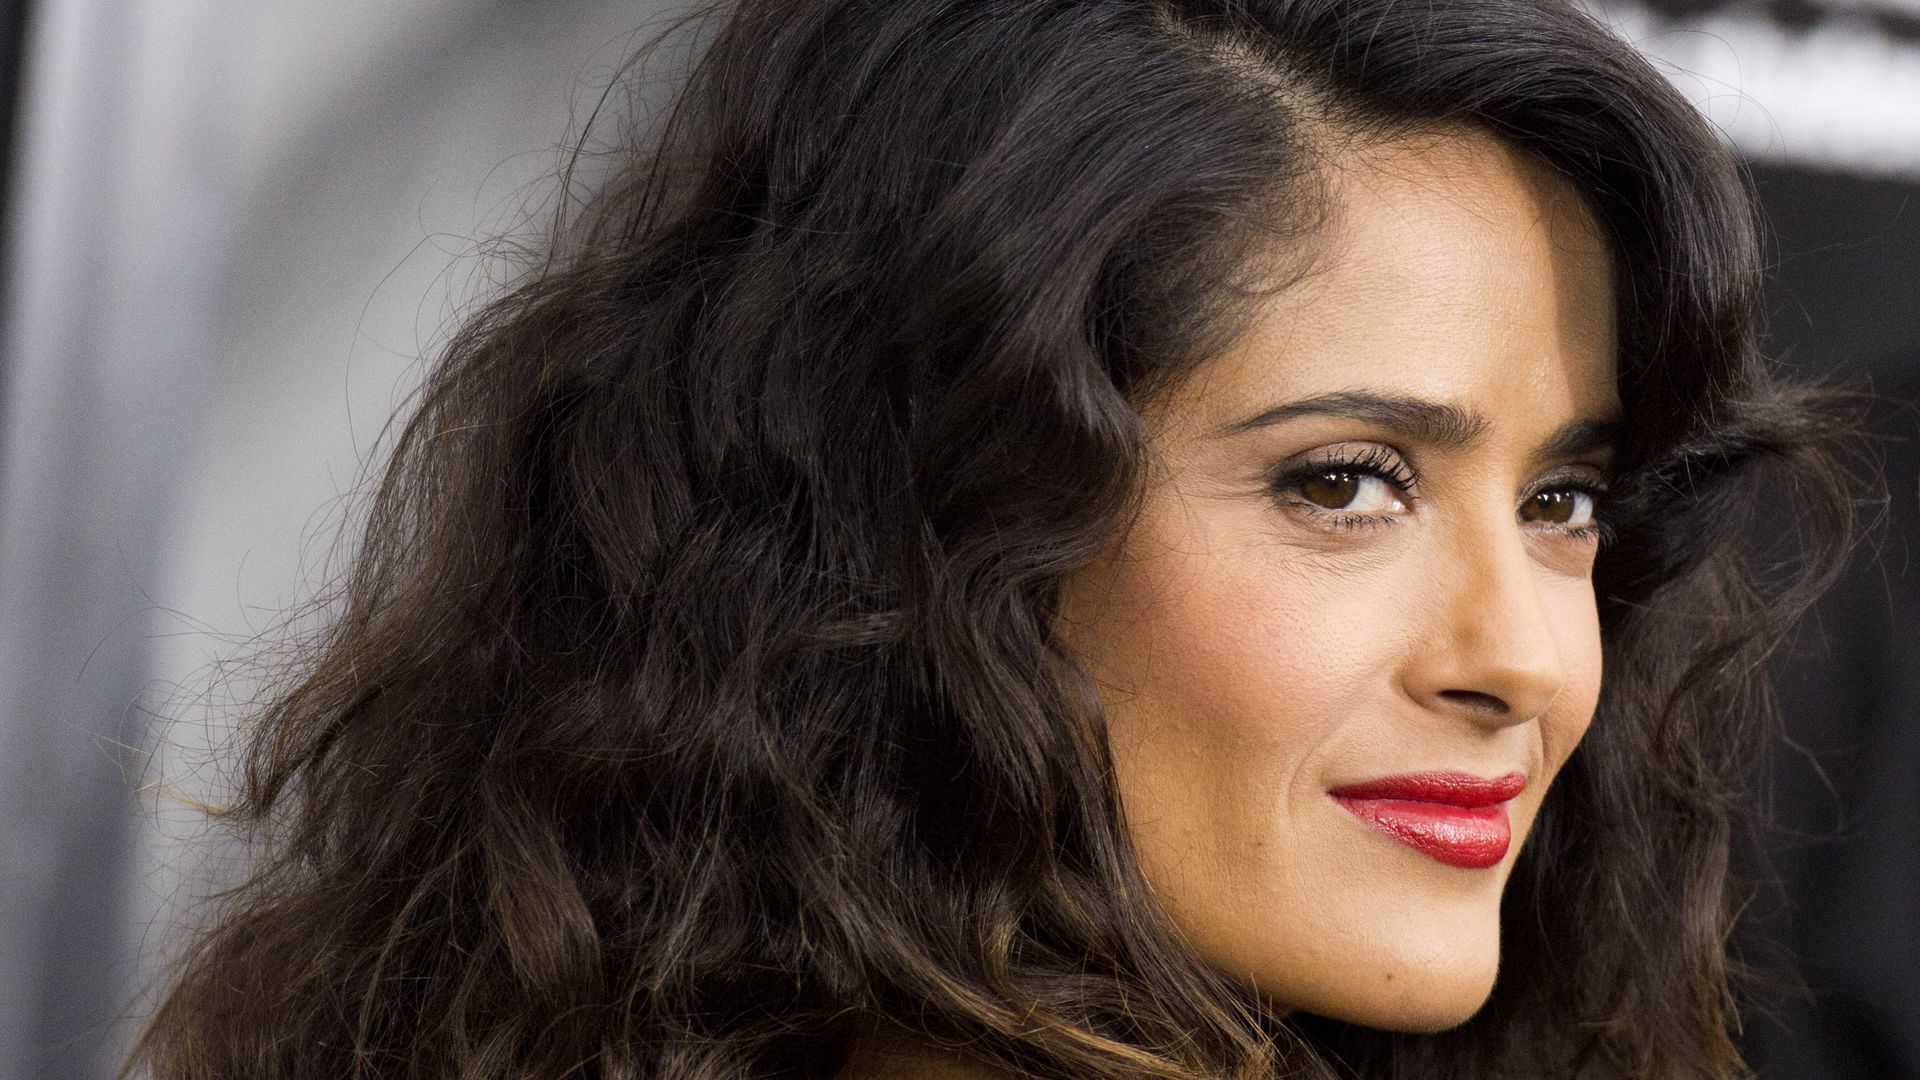 Mexican-American actress Salma Hayek looks over her shoulder.